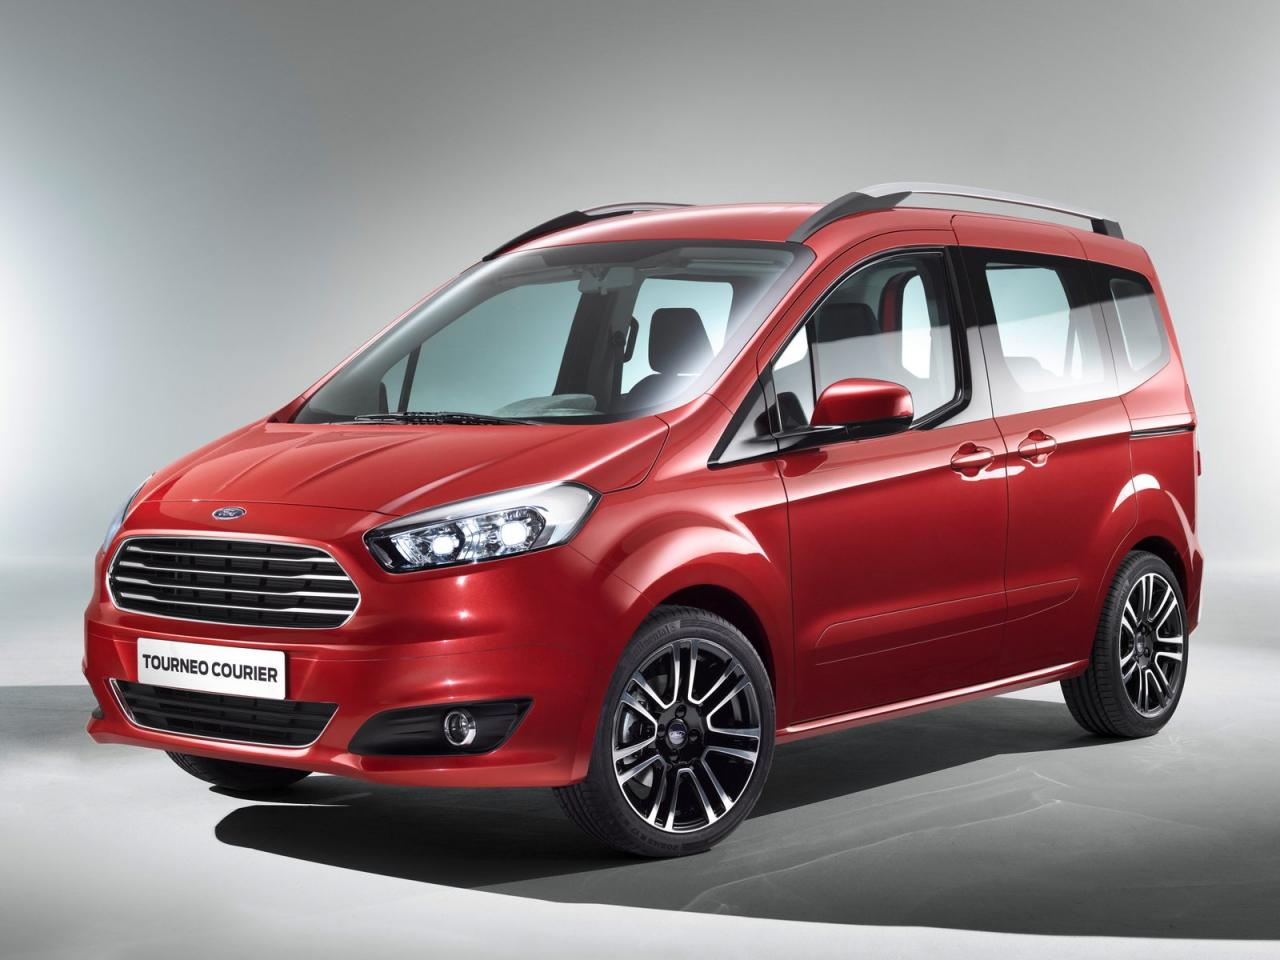 Ford+Tourneo+Courier+1.jpg